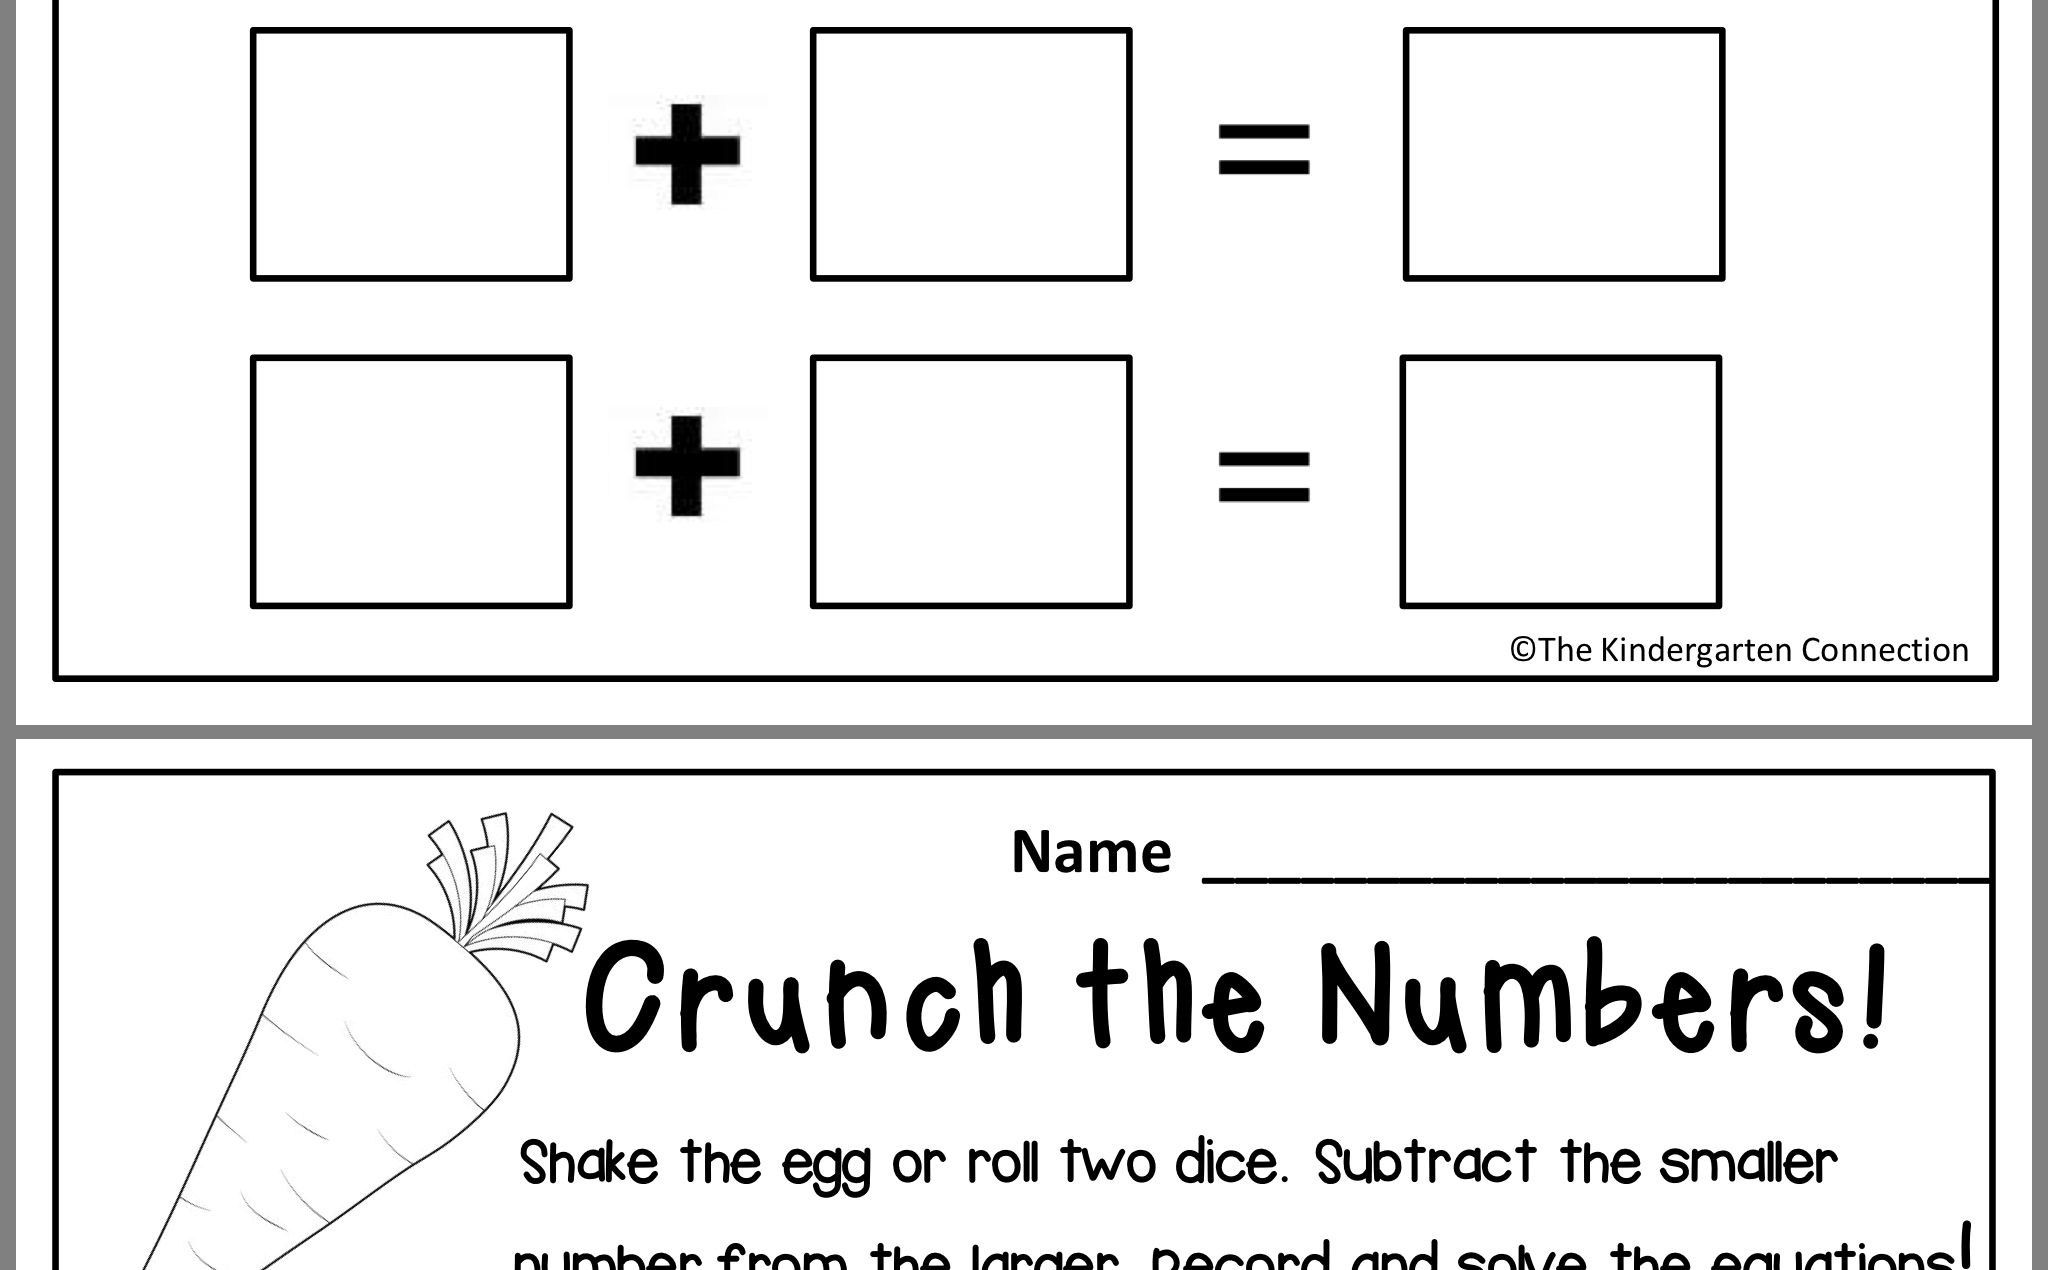 57 Handwriting Worksheet Maker Pics All About Worksheet Handwriting Worksheets For Kids Handwriting Worksheet Maker Handwriting Worksheets